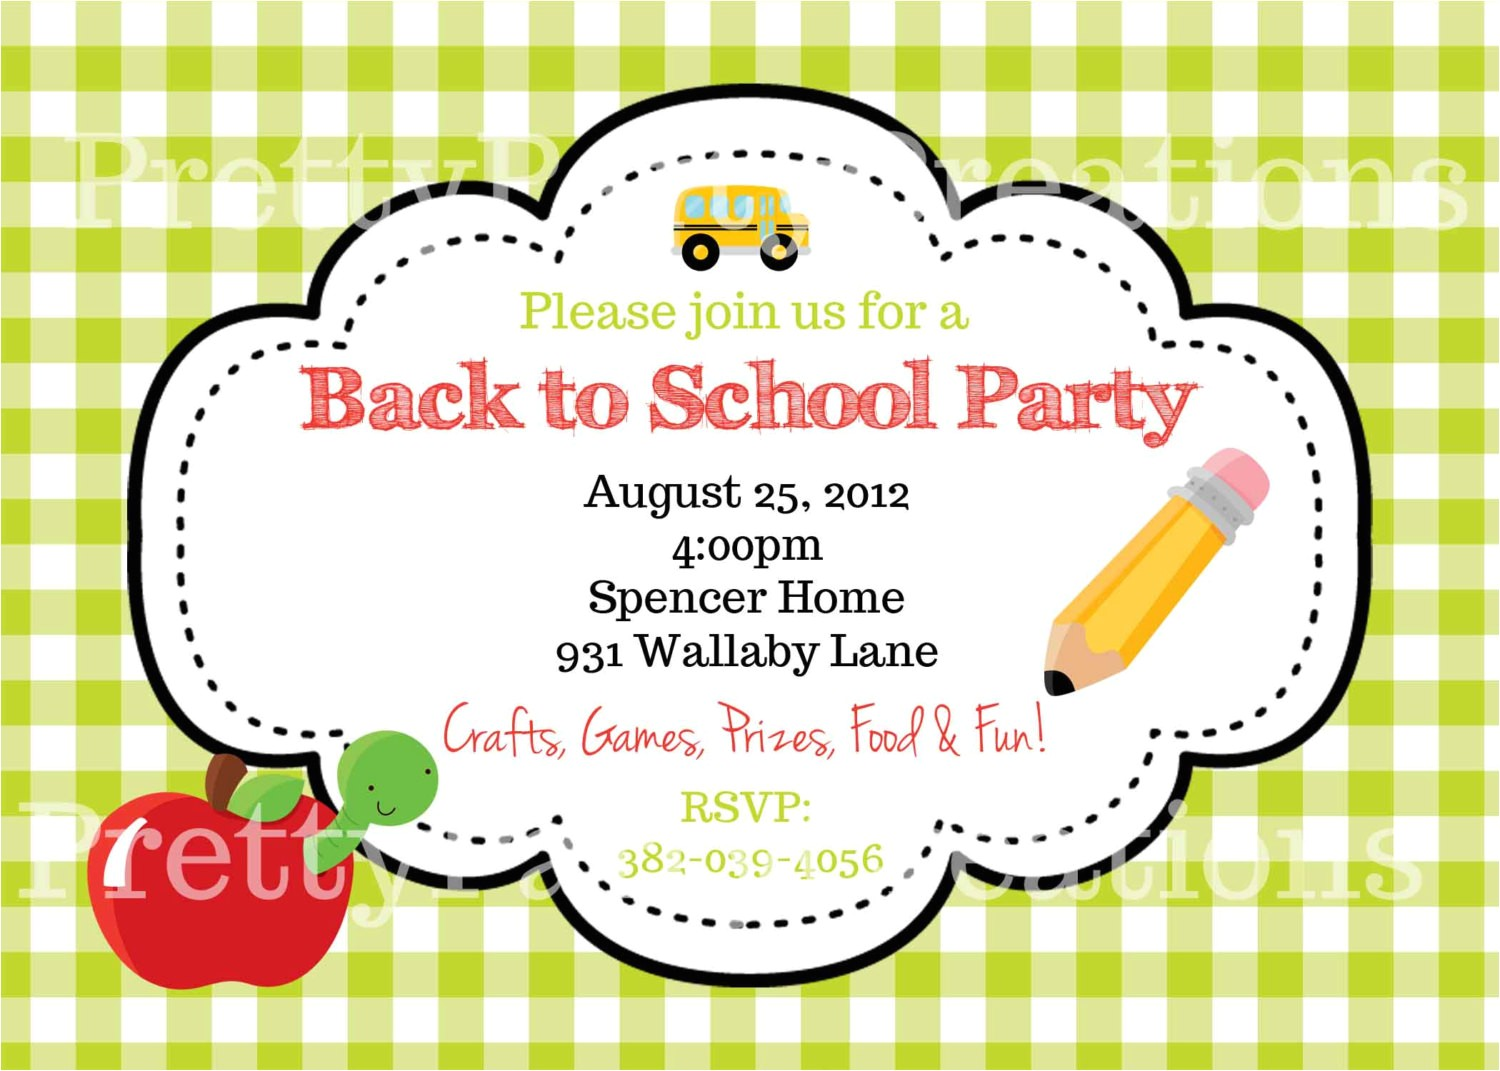 end of summer apple back to school party invitation